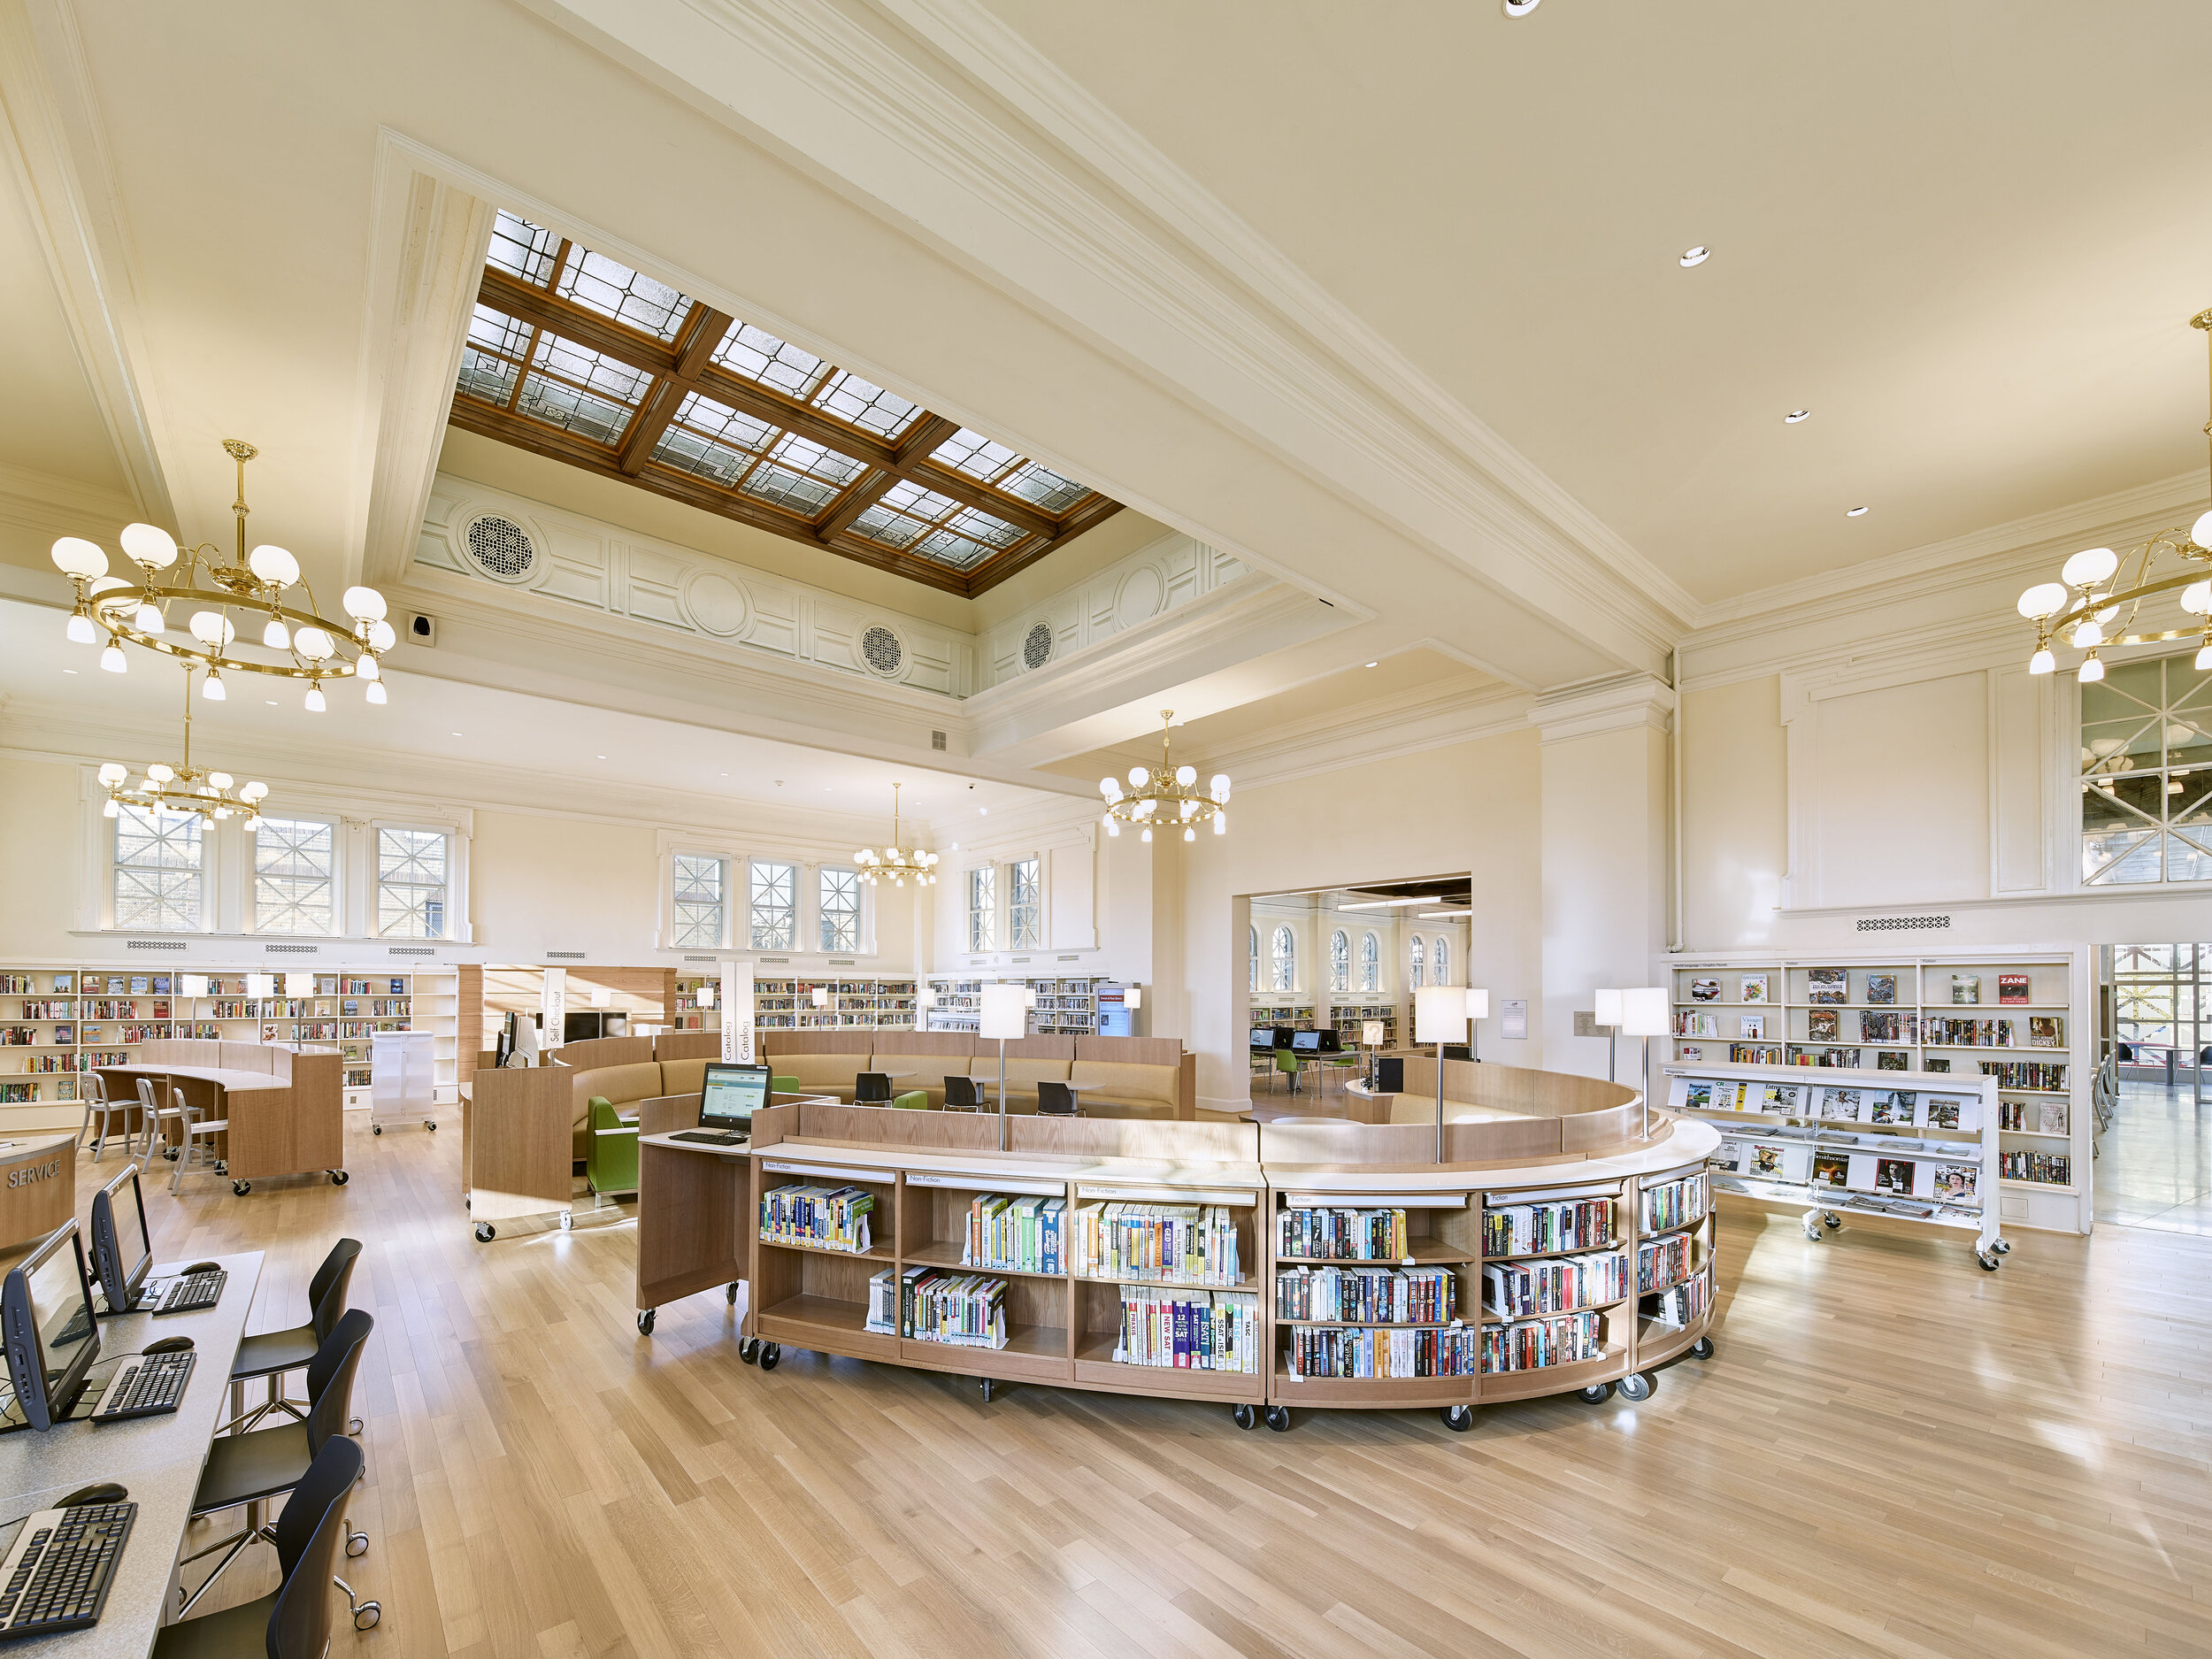 The existing pendants were replaced with versions similar to the original fixtures. Recessed down-lights were added to create more direct light for the readers. Every window is up-lit from the inside sill with a linear LED up-light. This creates the illusion that the library is always open after dark and allows it to act as a lantern and beacon in the neighborhood.